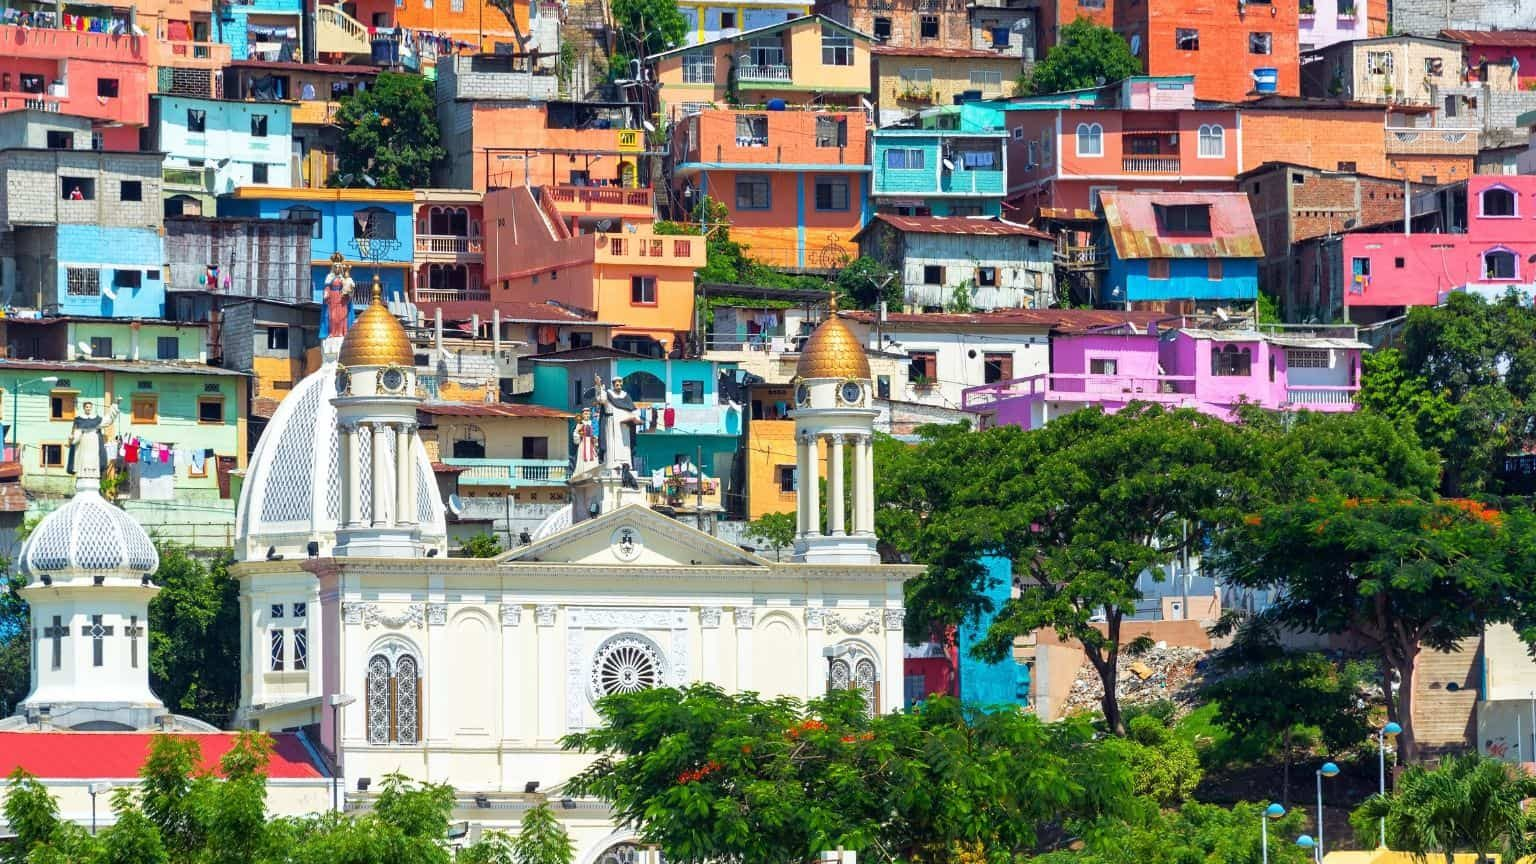 White church with colorful houses in Ecuador